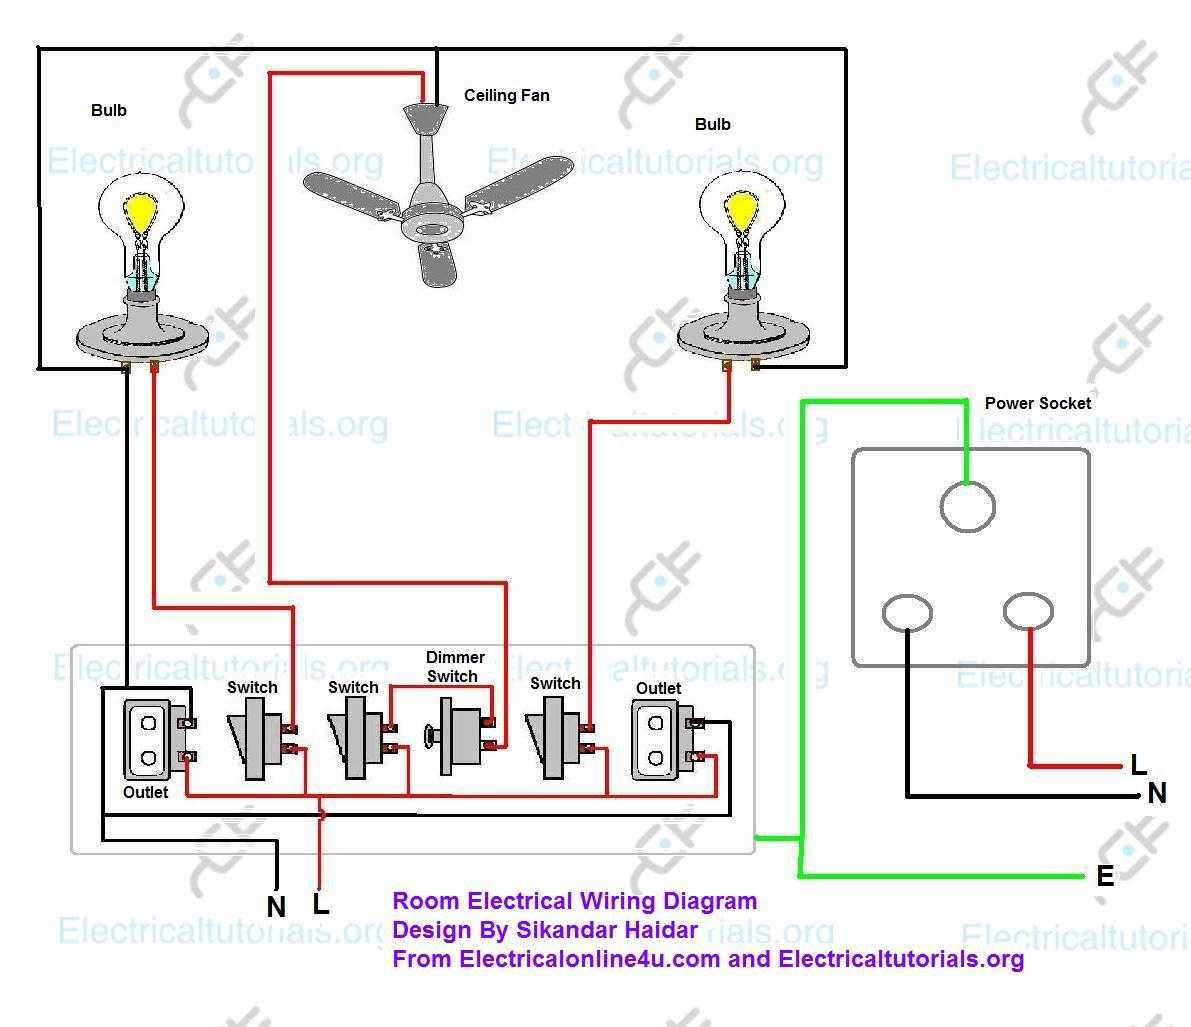 Electrical Diagram Drawing App